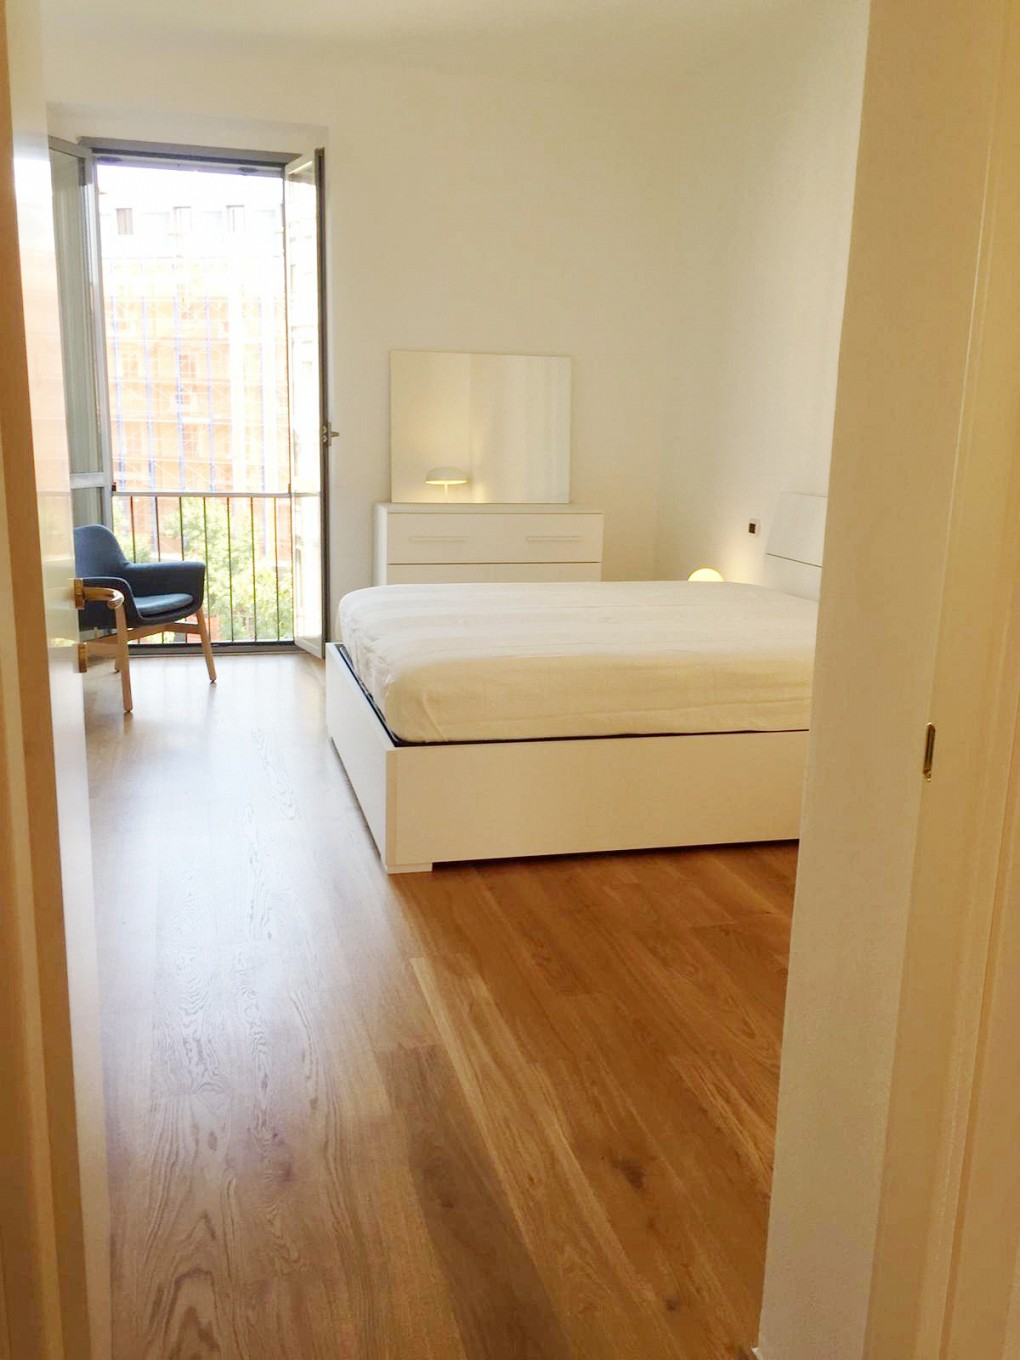 BocconiRent: Newly renovated one bedroom flat in Isola